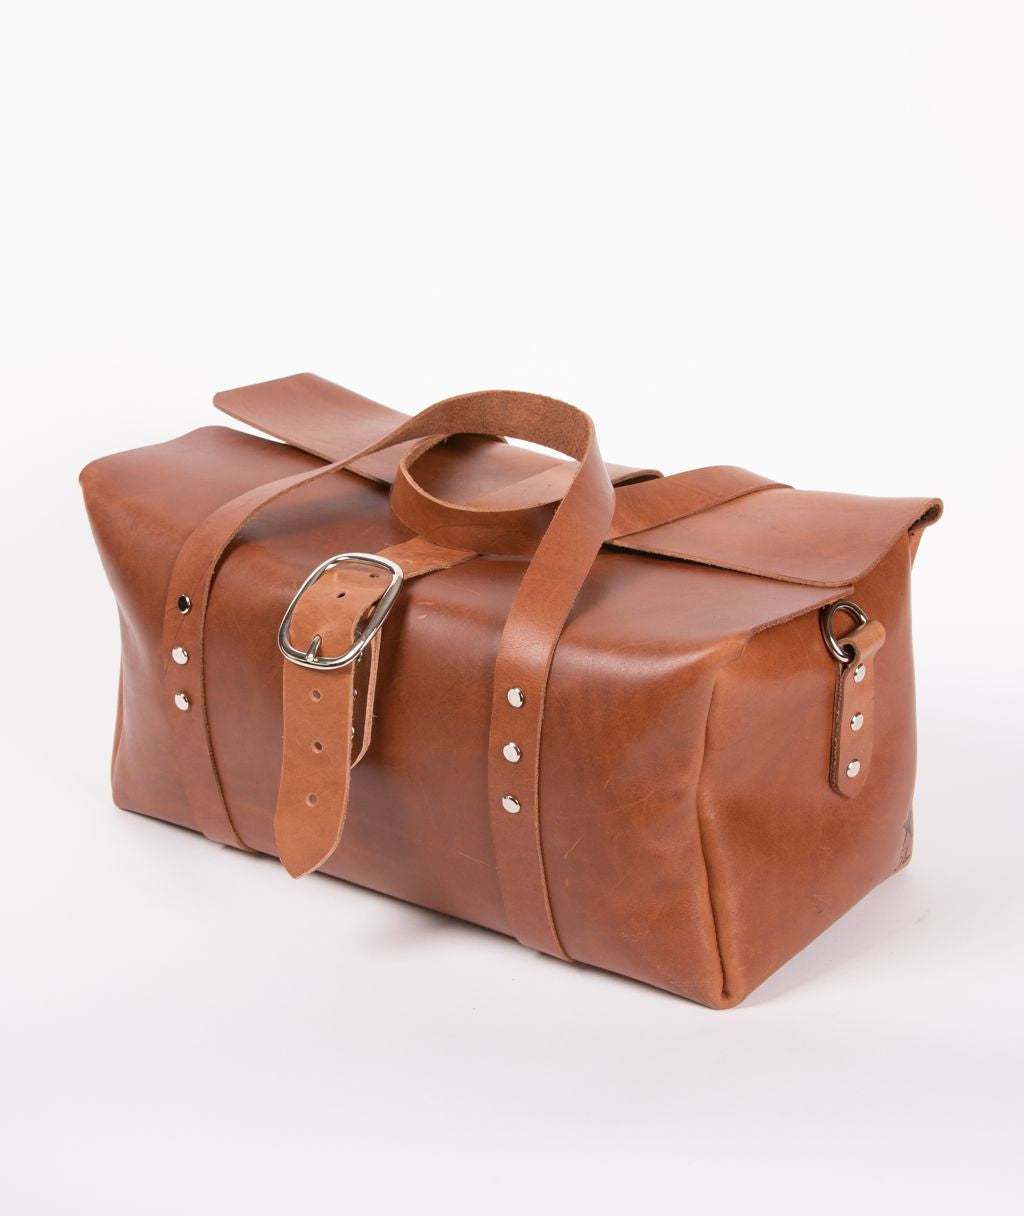 9ba8f0350 Load image into Gallery viewer, Handmade Leather Duffel Bag - Medium ...